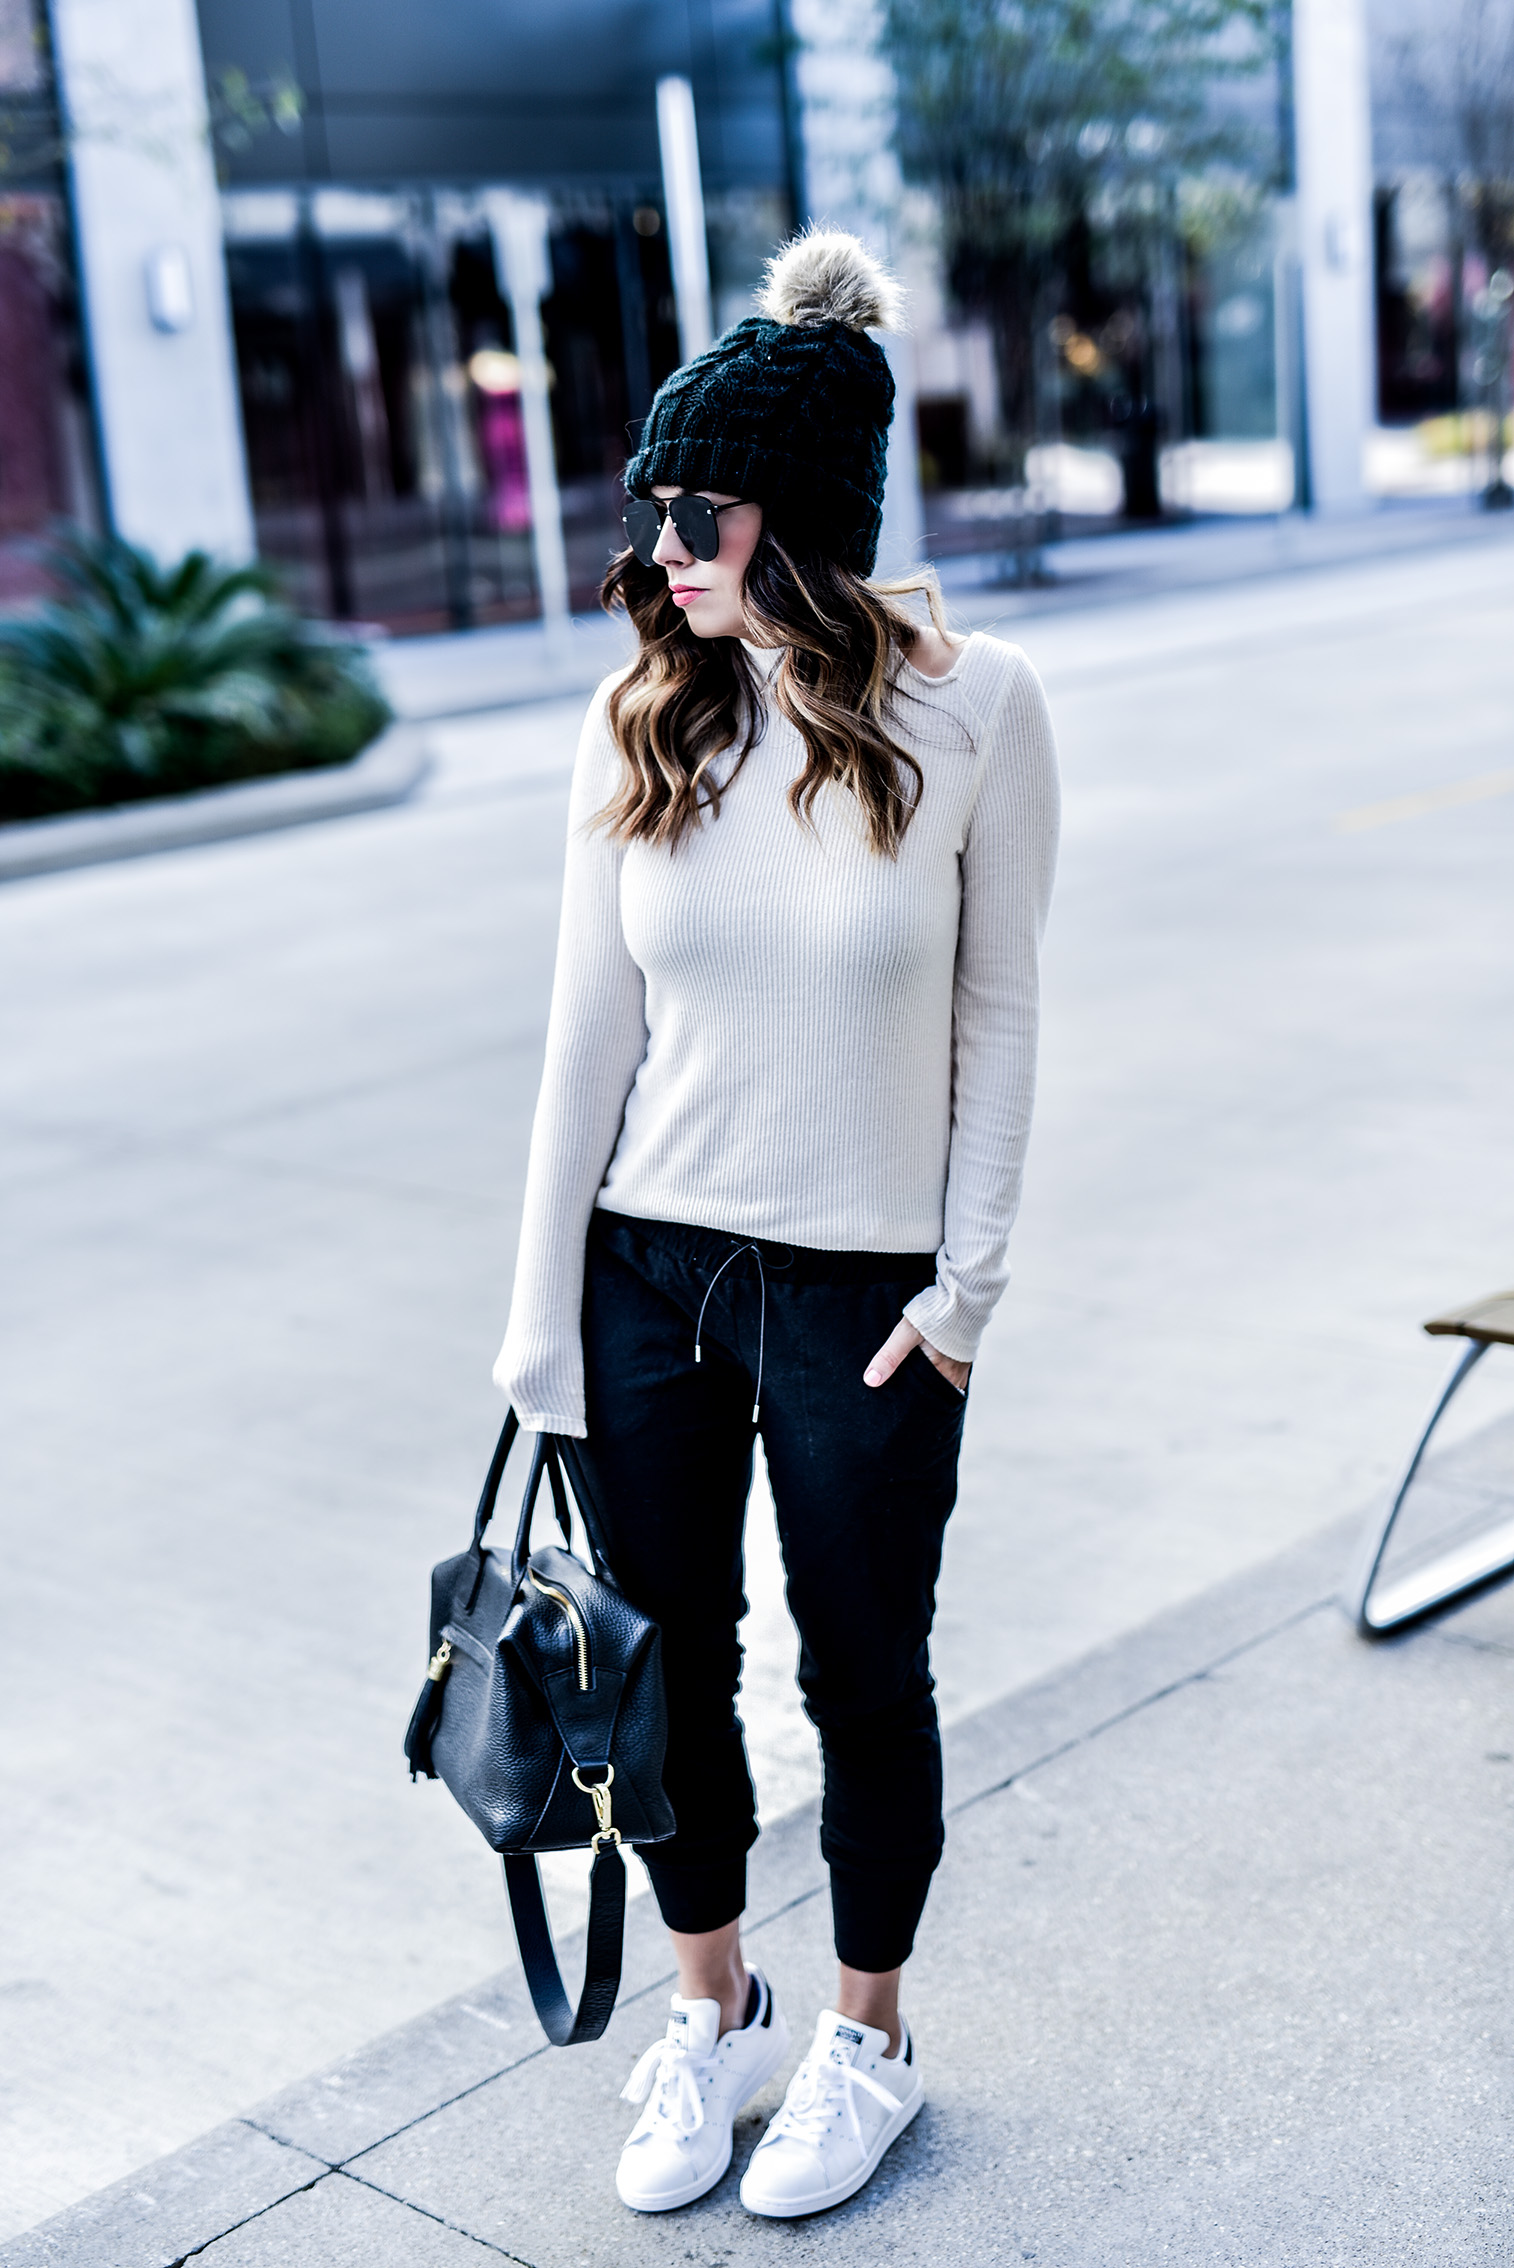 Fashion and lifestyle blogger Tiffany Jais sharing 5 reasons to love joggers | She is wearing free people skinny black joggers, Stan Smith sneakers, a white cutout sweater by Revolve, and a faux fur pom pom beanie | streetstyle fashion, women's fashion